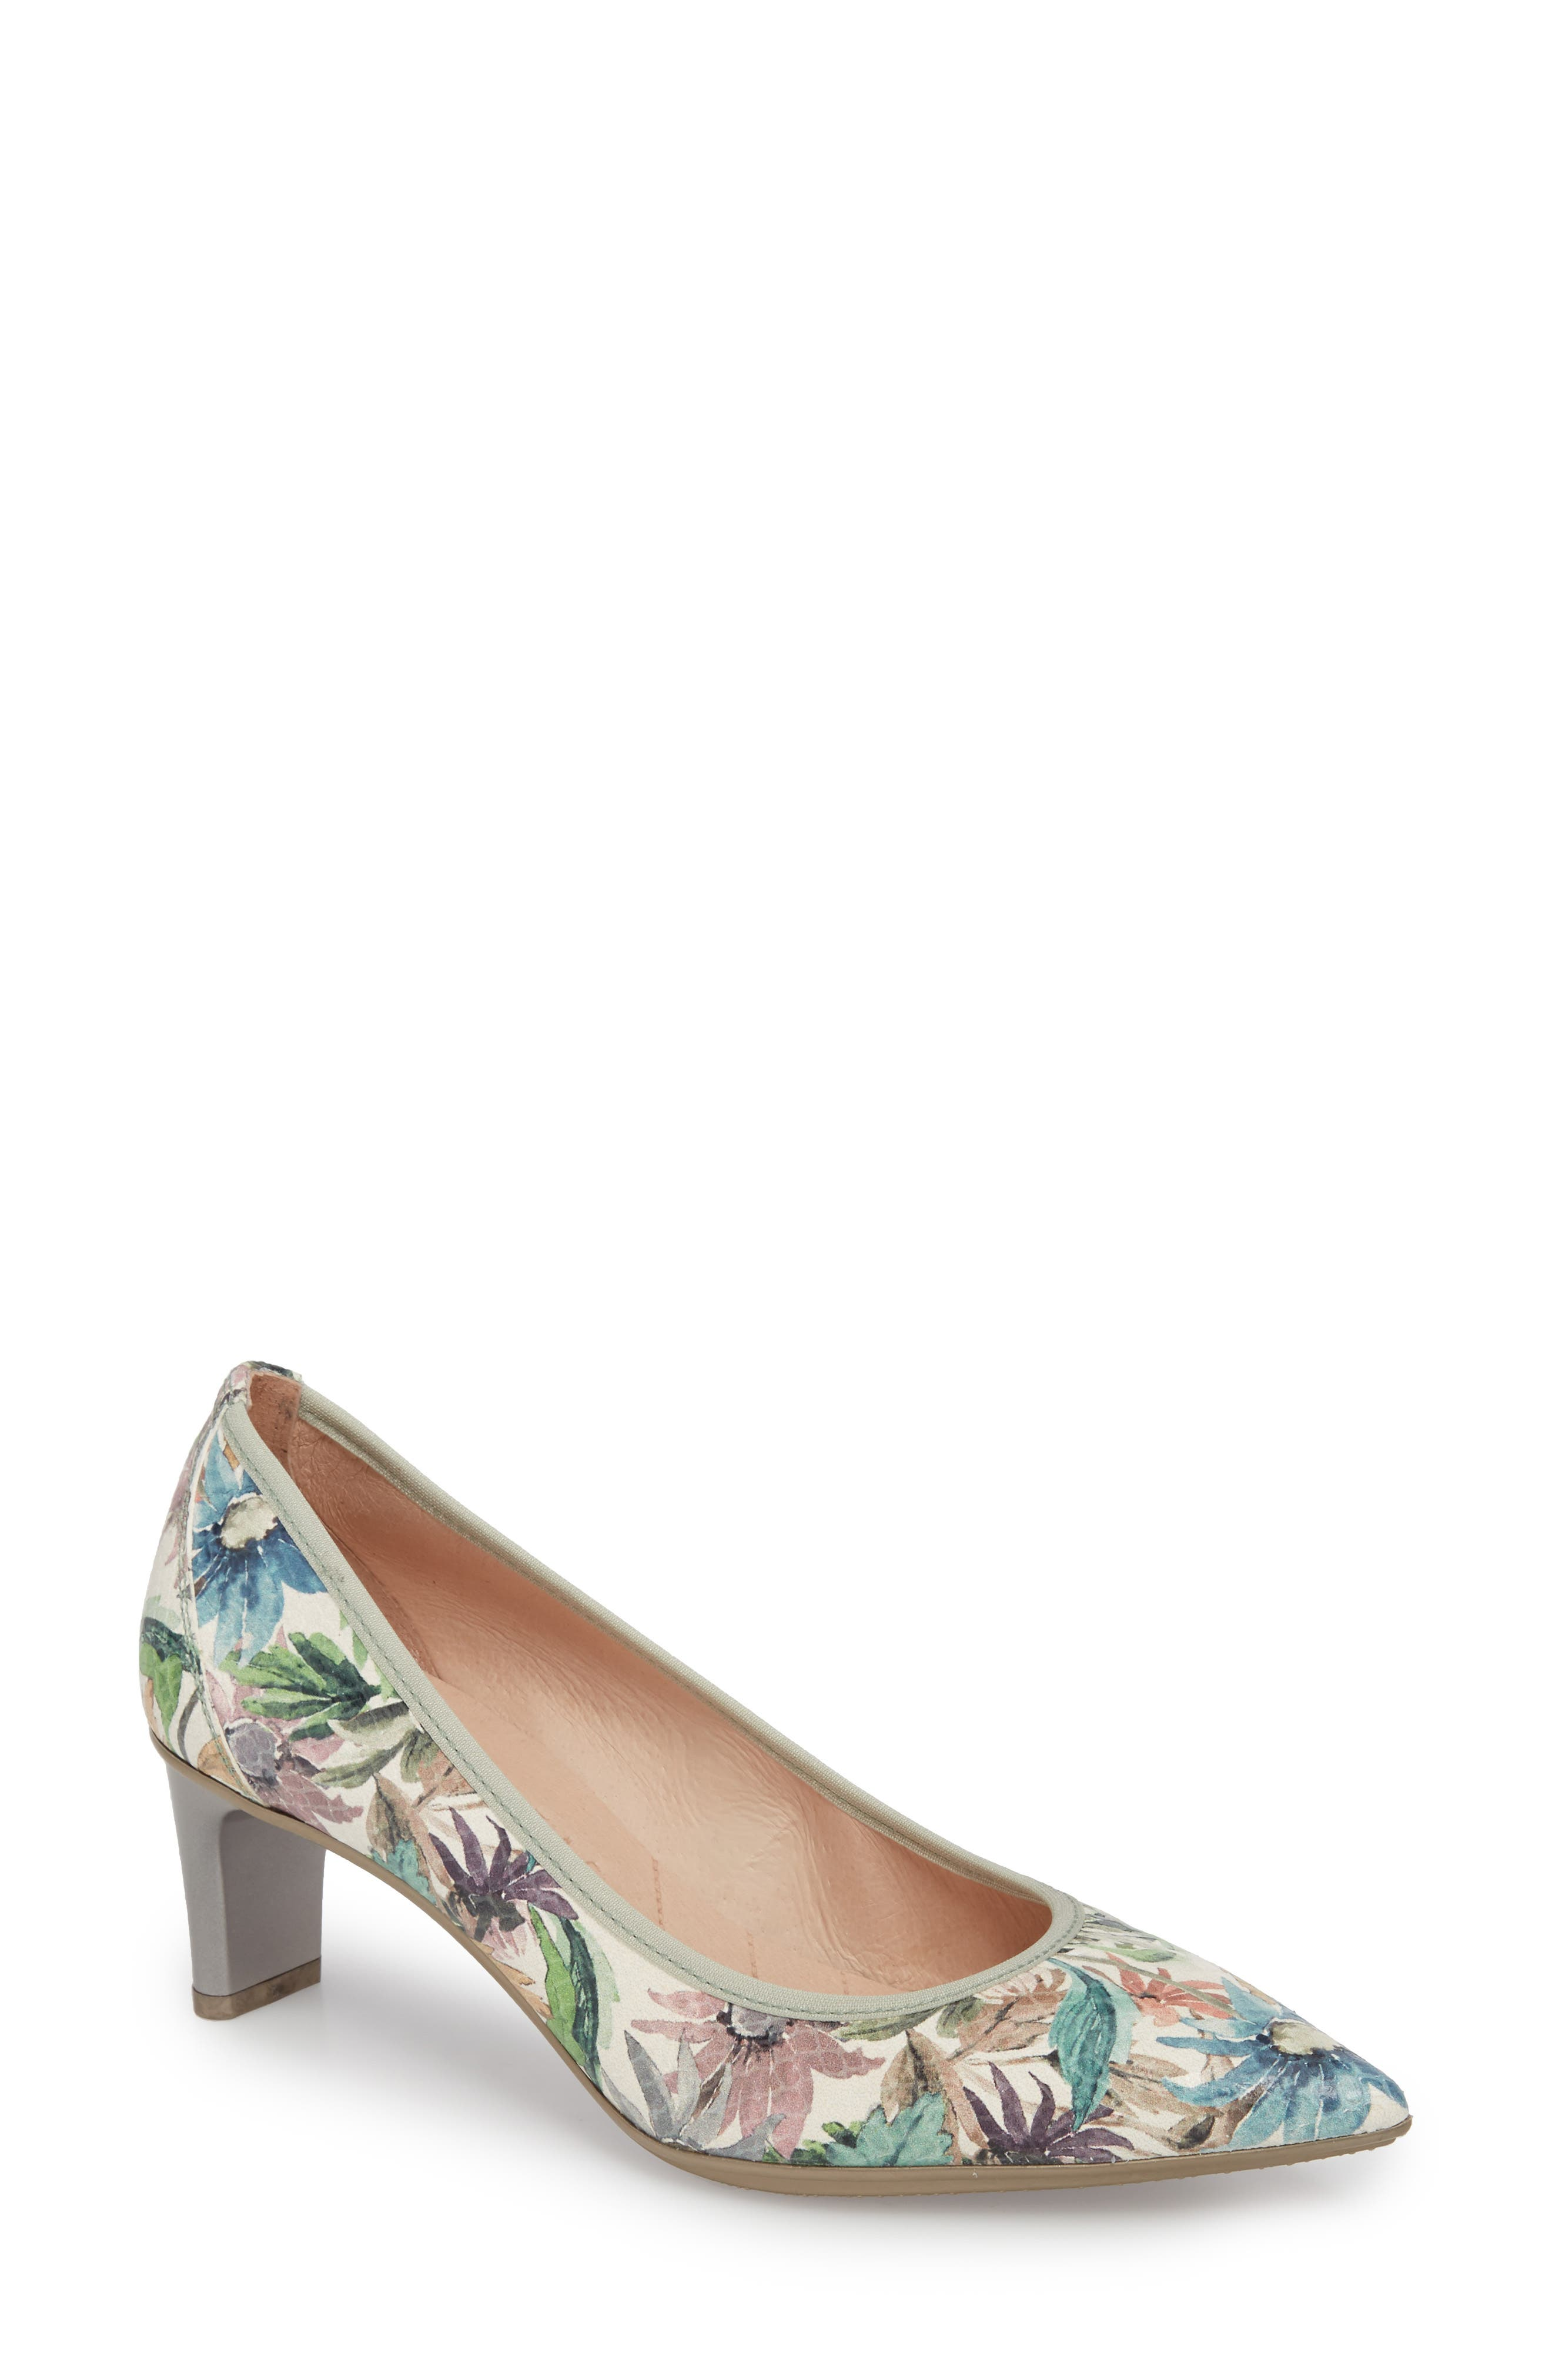 Melanie Pointy Toe Pump,                             Main thumbnail 1, color,                             Blossom Leather